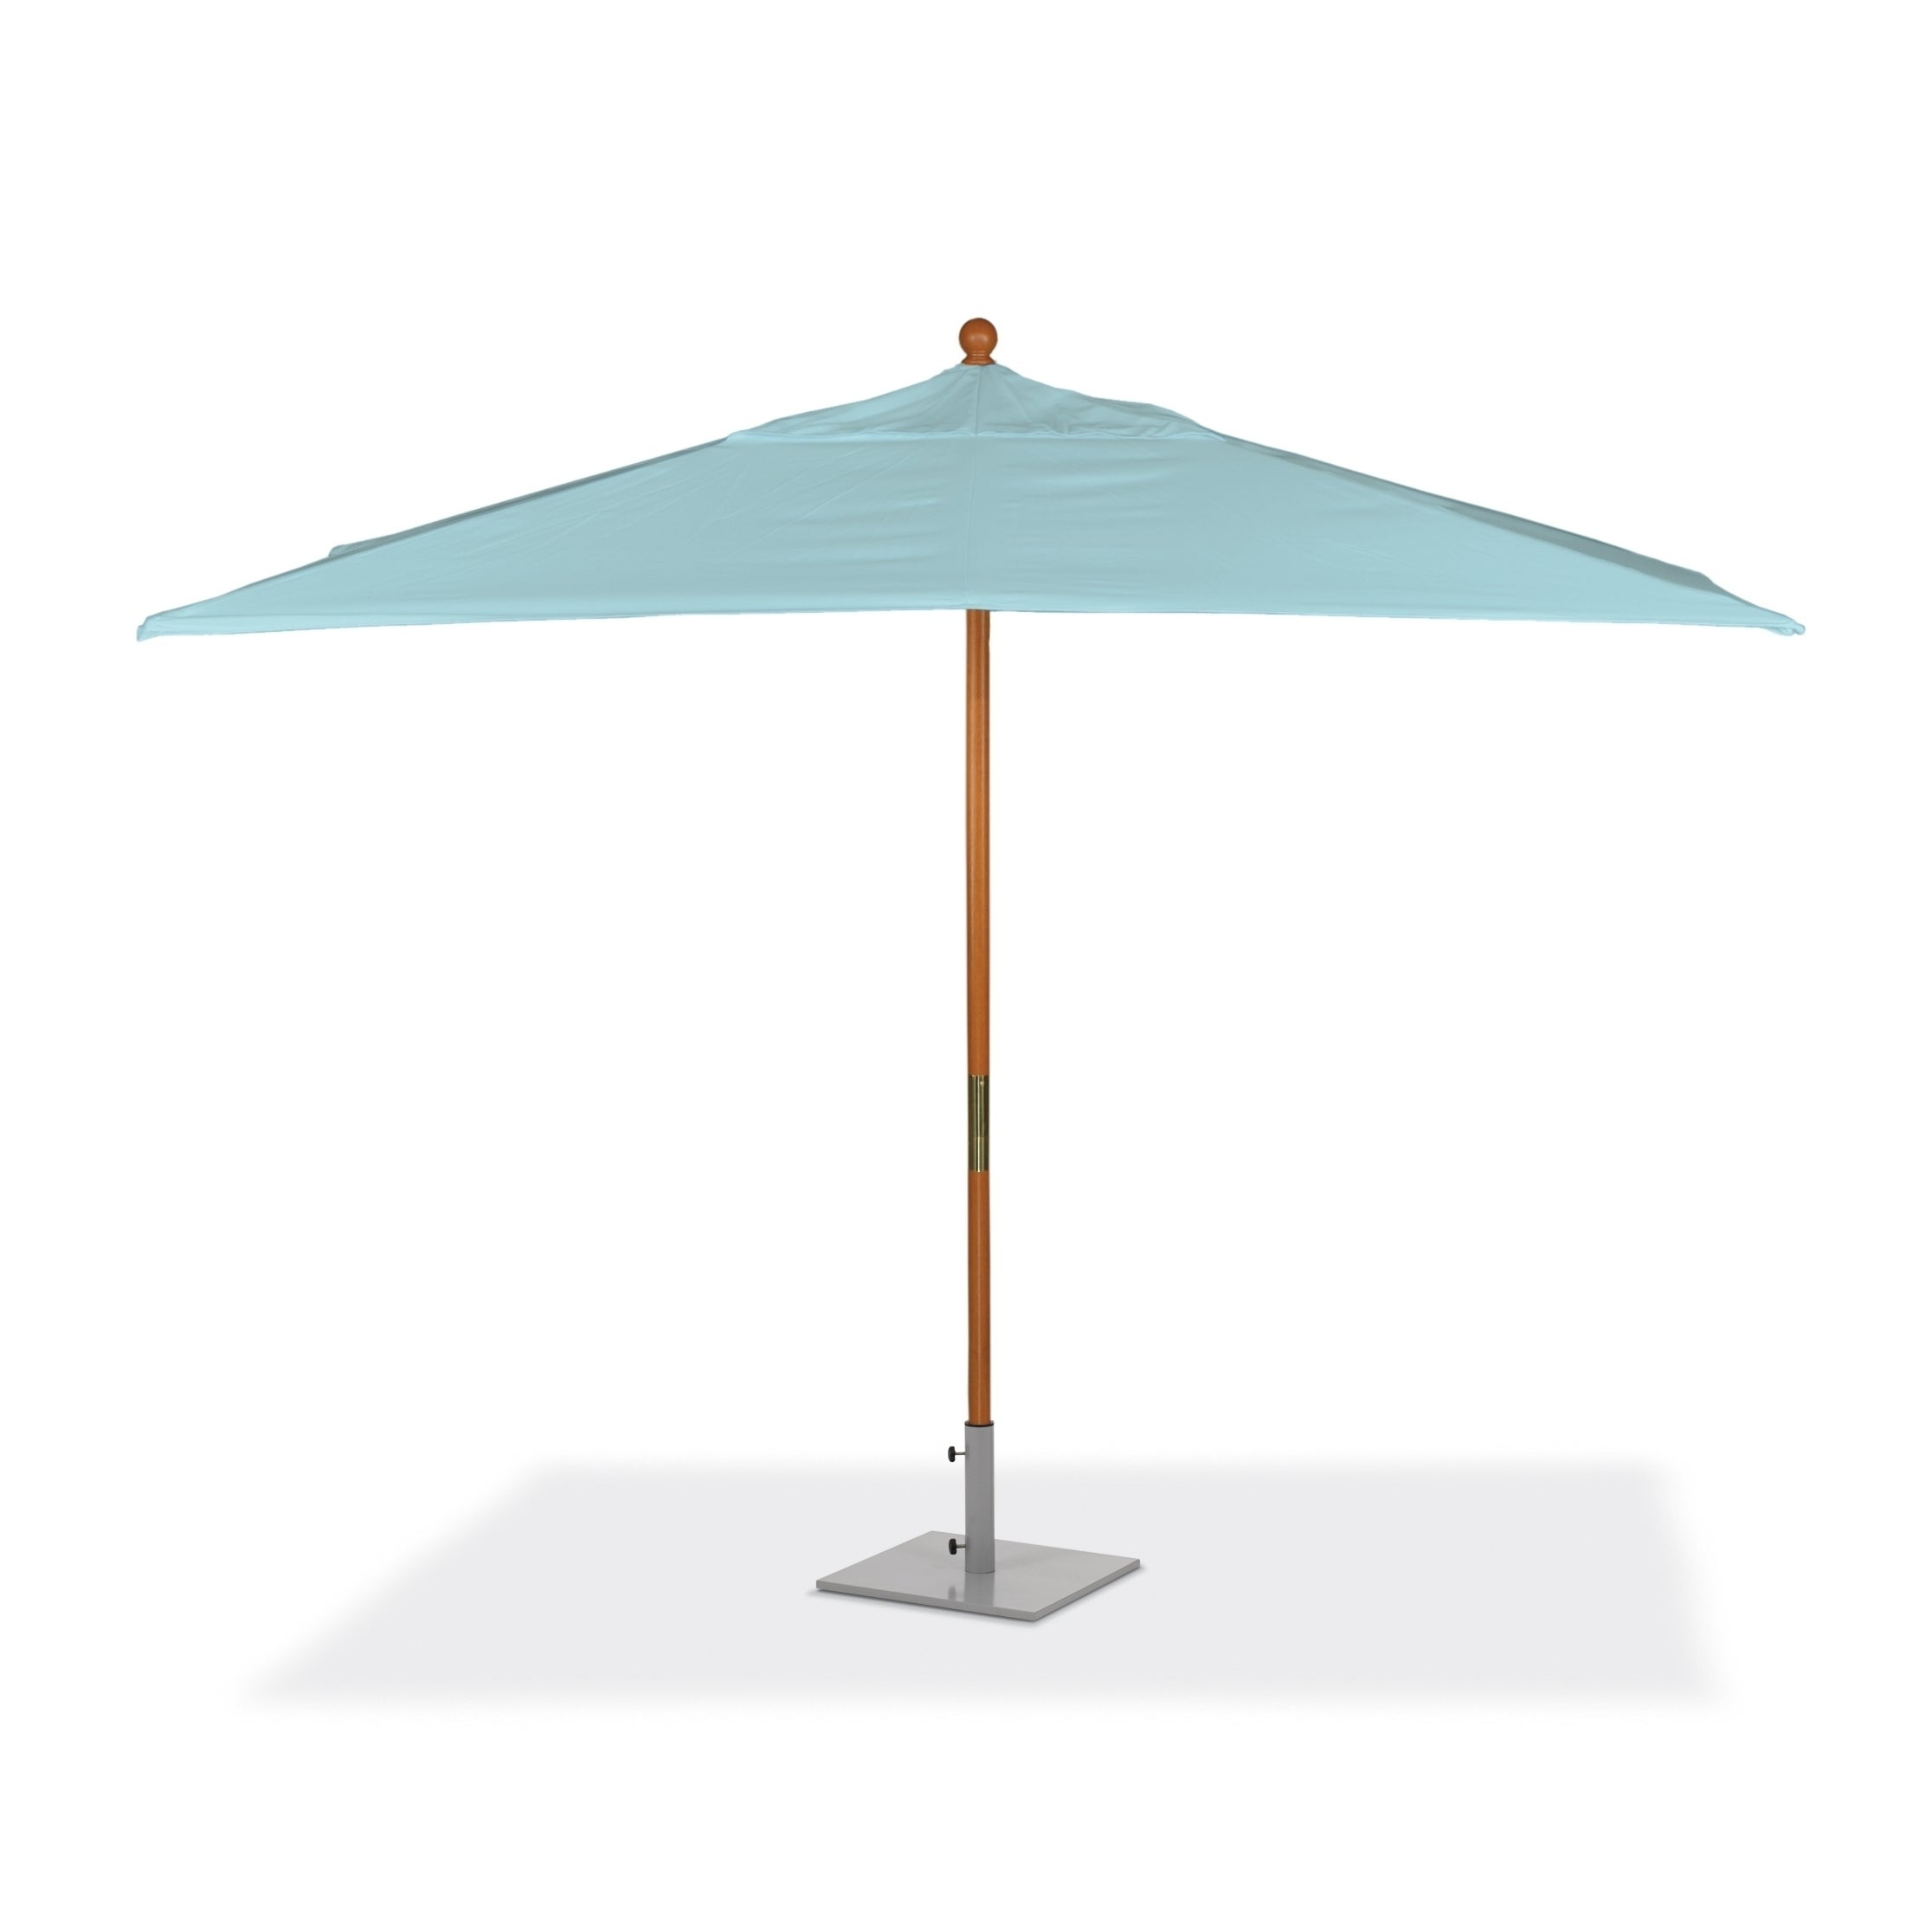 Most Current Solid Rectangular Market Umbrellas Intended For Oxford Garden 10 Feet Rectangular Mineral Blue Sunbrella Fabric Shade Market Umbrella With Solid Tropical Hardwood Frame (View 10 of 20)